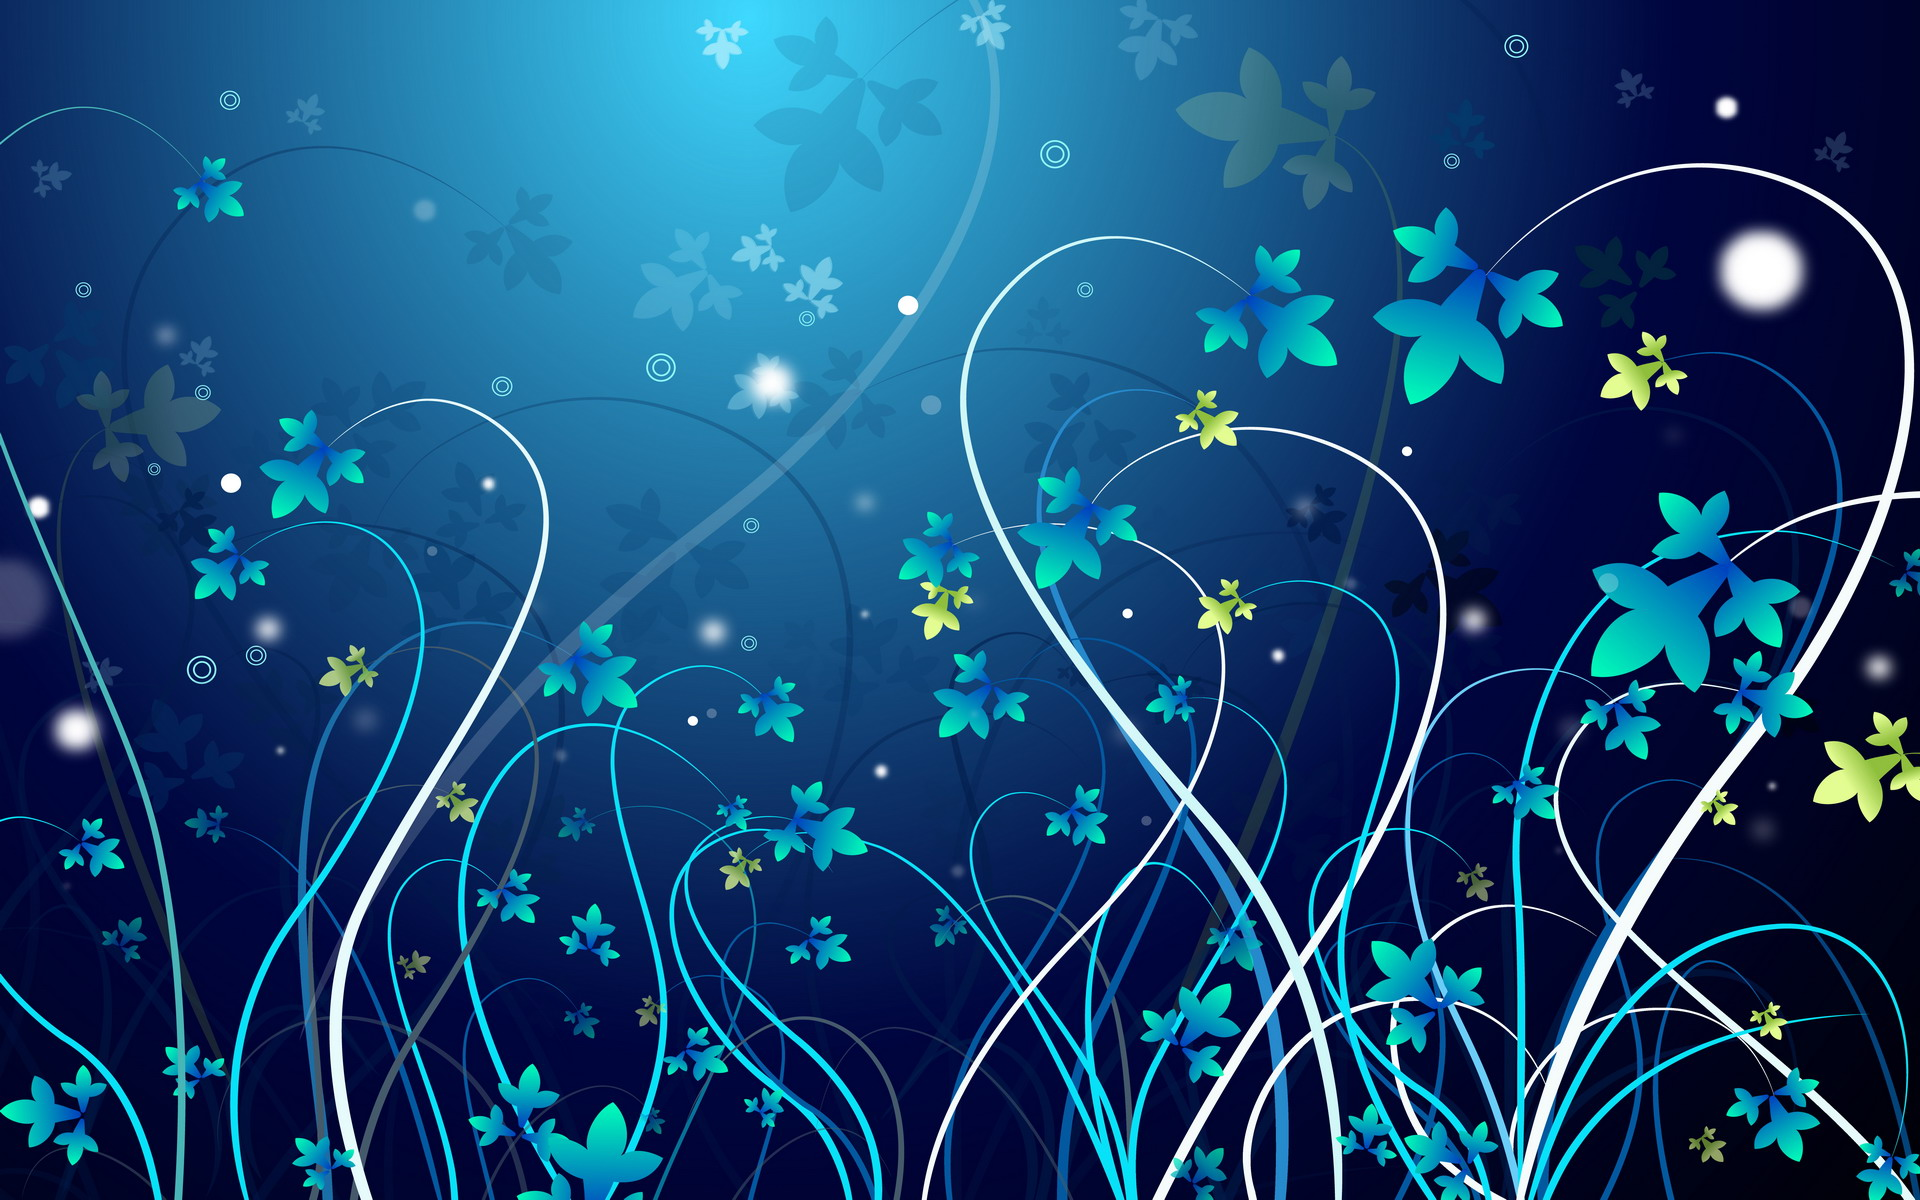 1920x1200 Winter Flowers desktop PC and Mac wallpaper